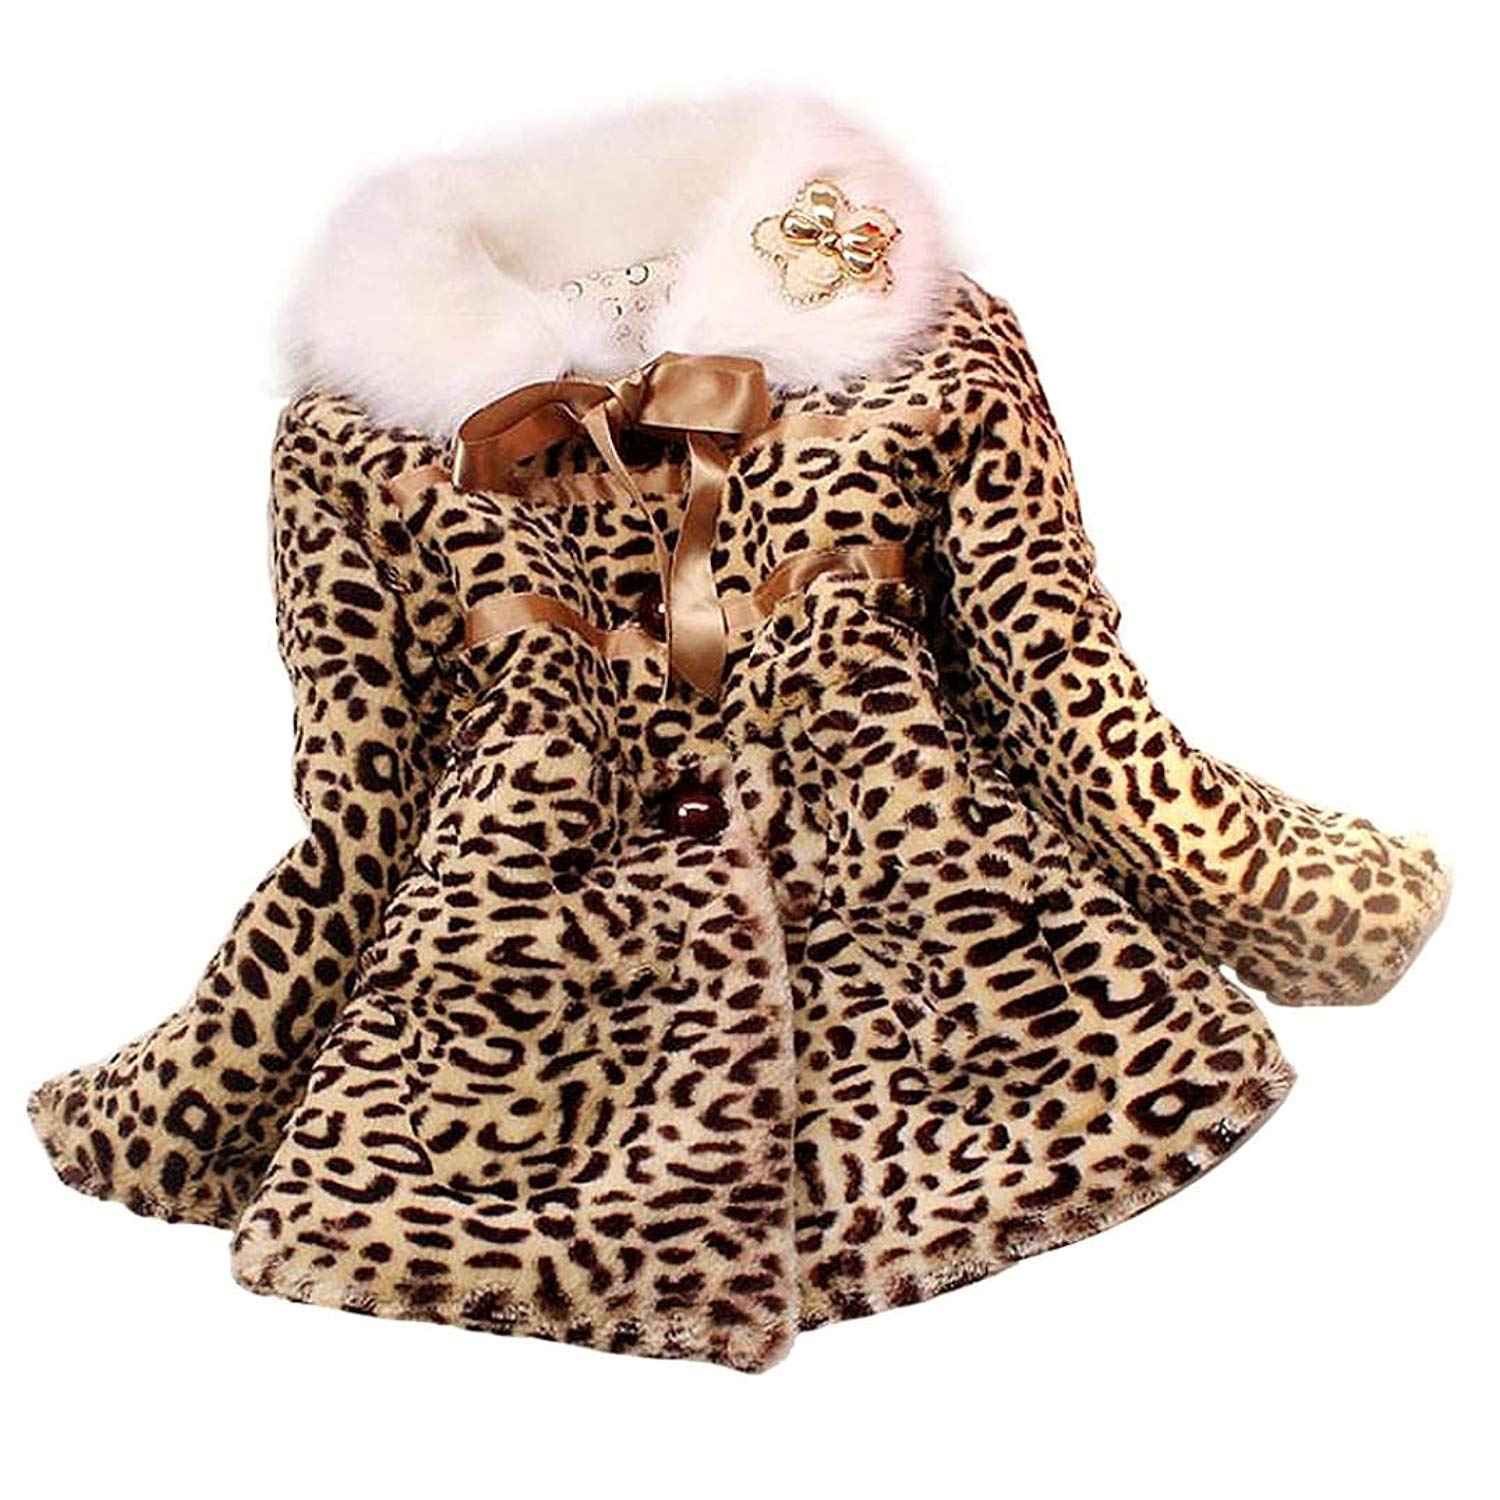 c0981ef0f8f6 Cheap Leopard Jacket For Girls